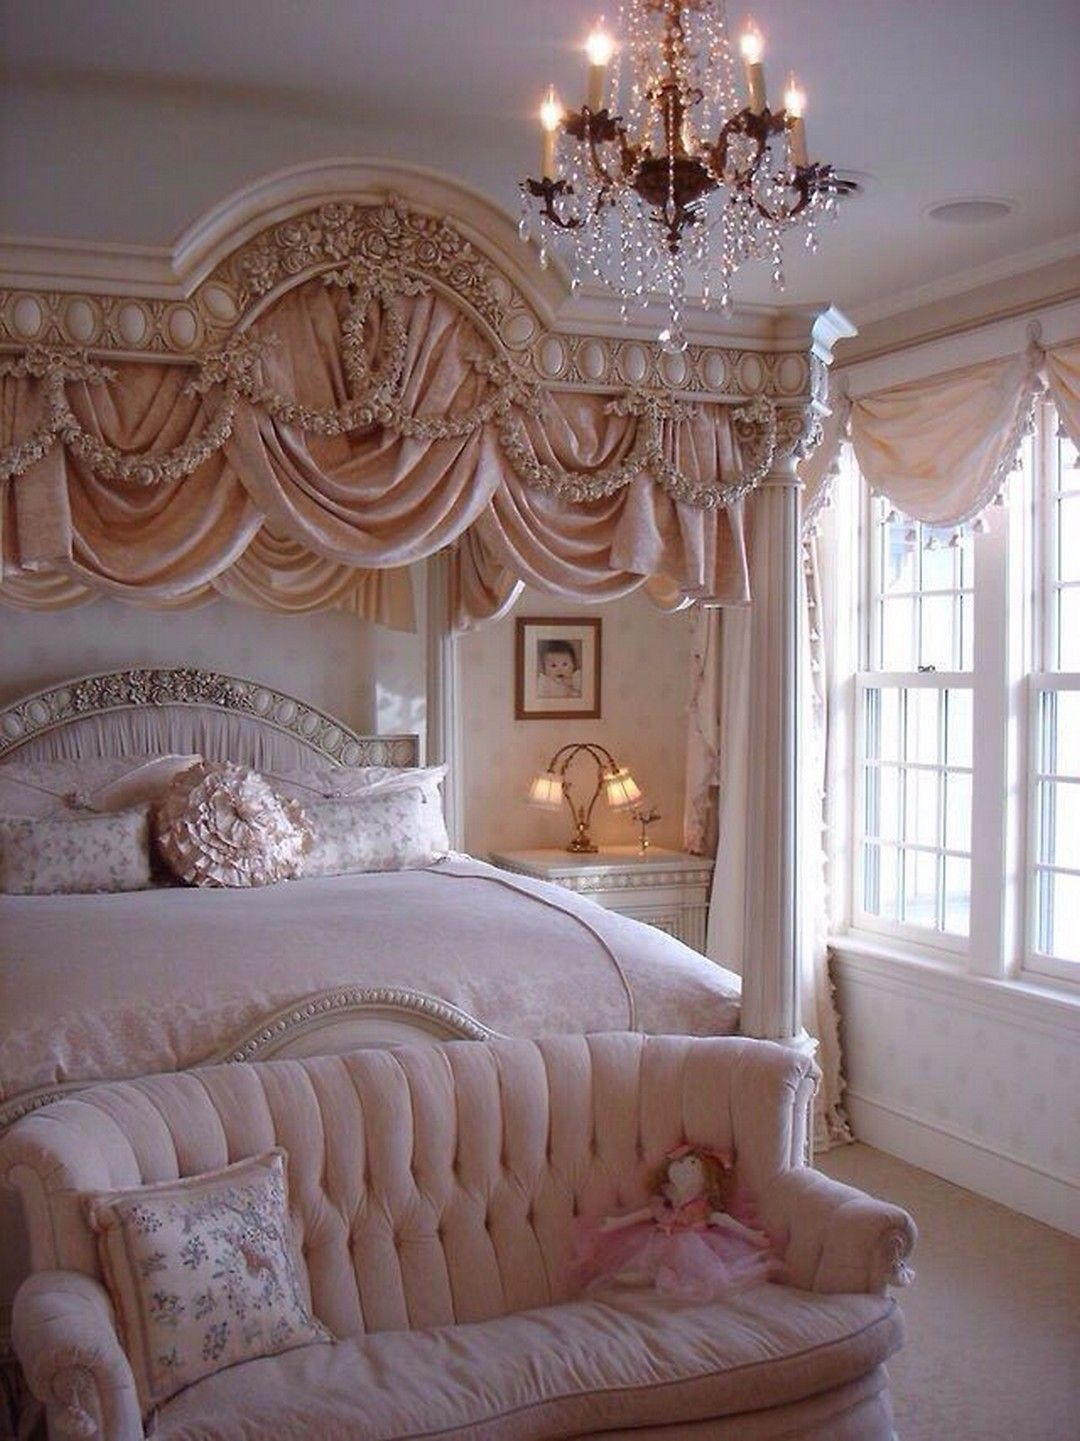 20 Fancy Cute Stuff For Your Bedroom In 2020 Glamourous Bedroom Luxurious Bedrooms Luxury Bedroom Design